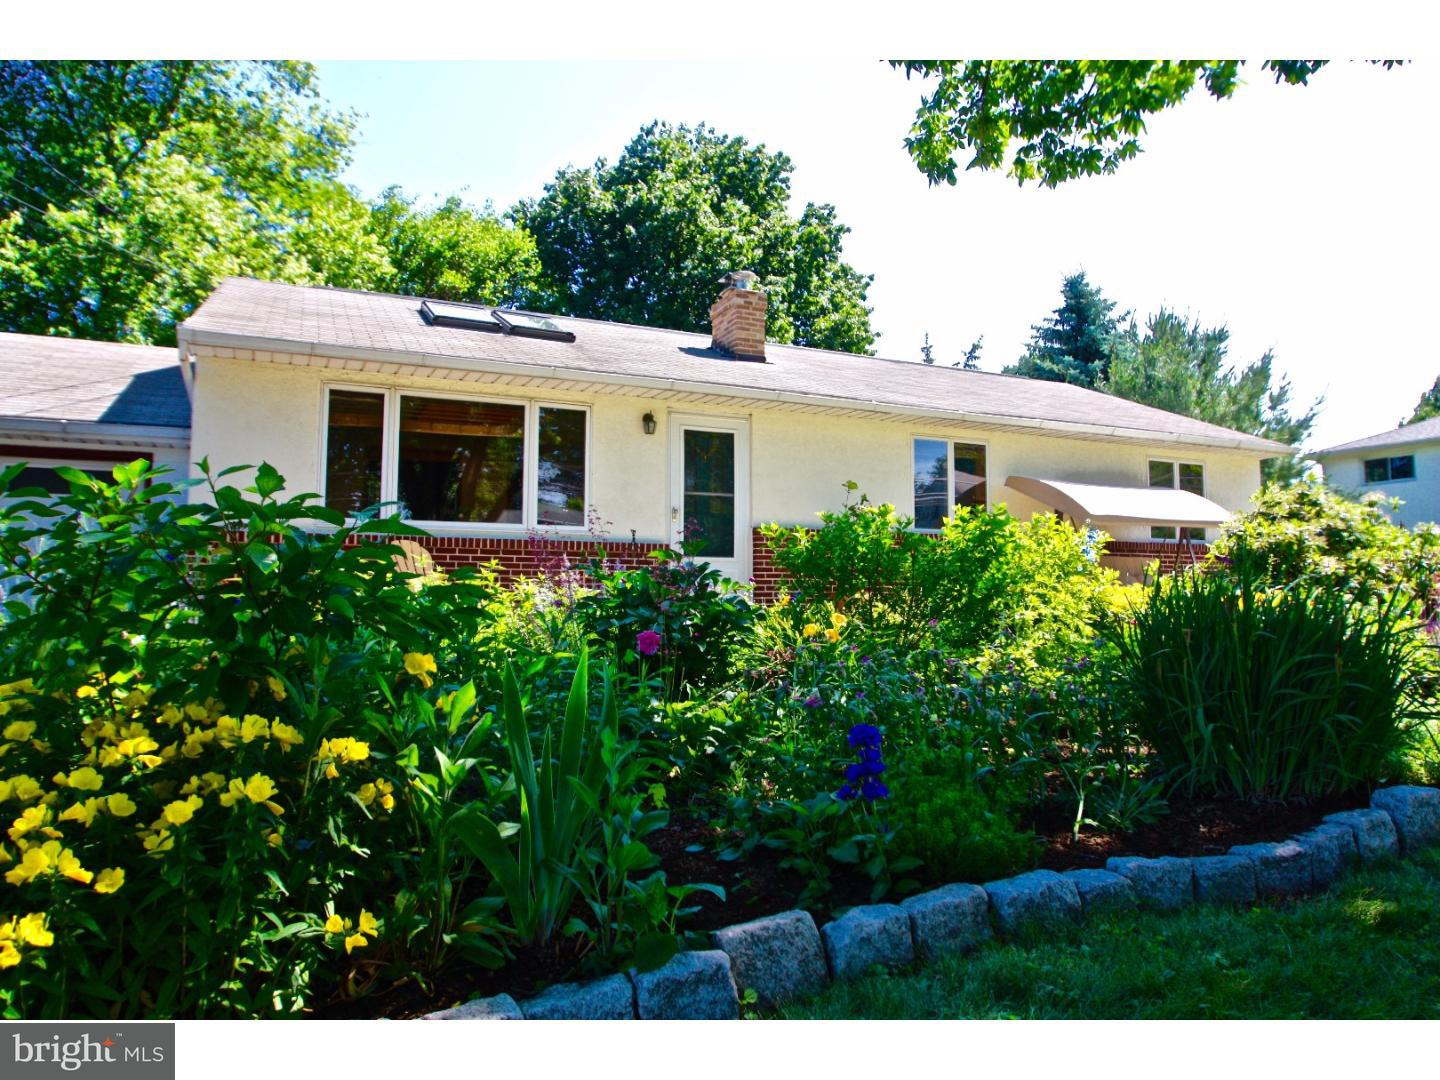 115 S BARINGER AVE, PERKASIE - Listed at $265,000,